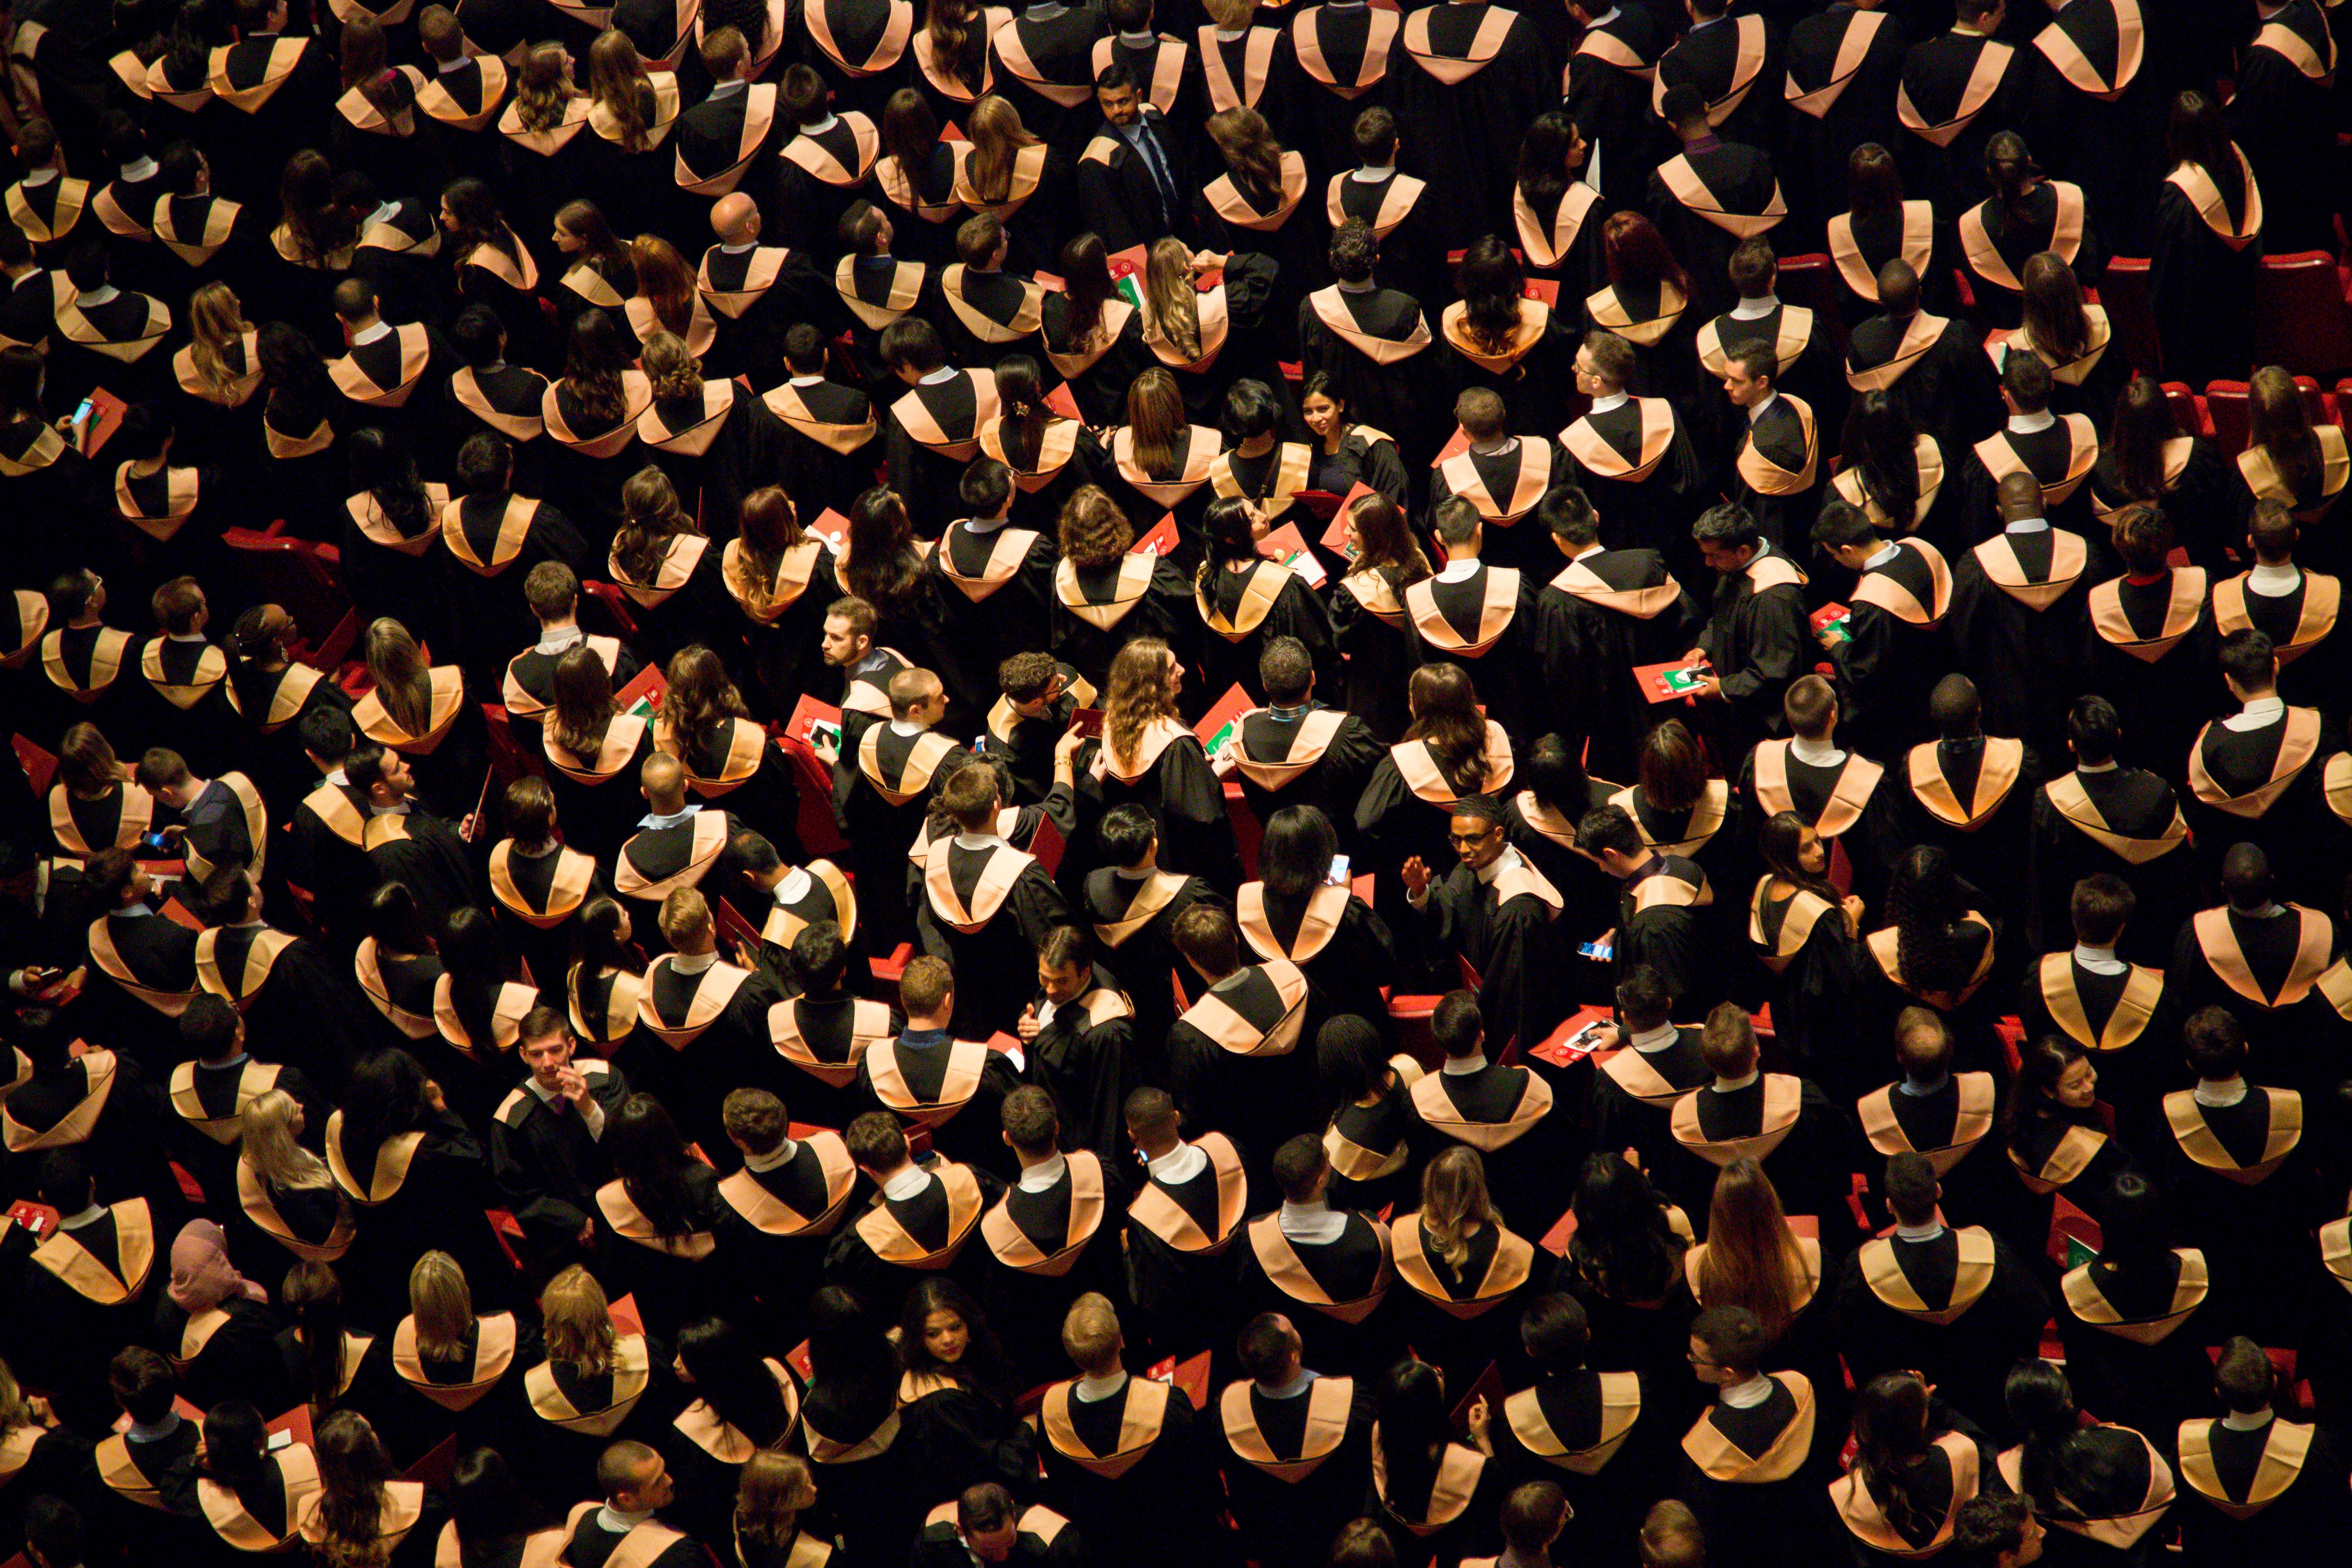 A large crowd of students at a university graduation ceremony